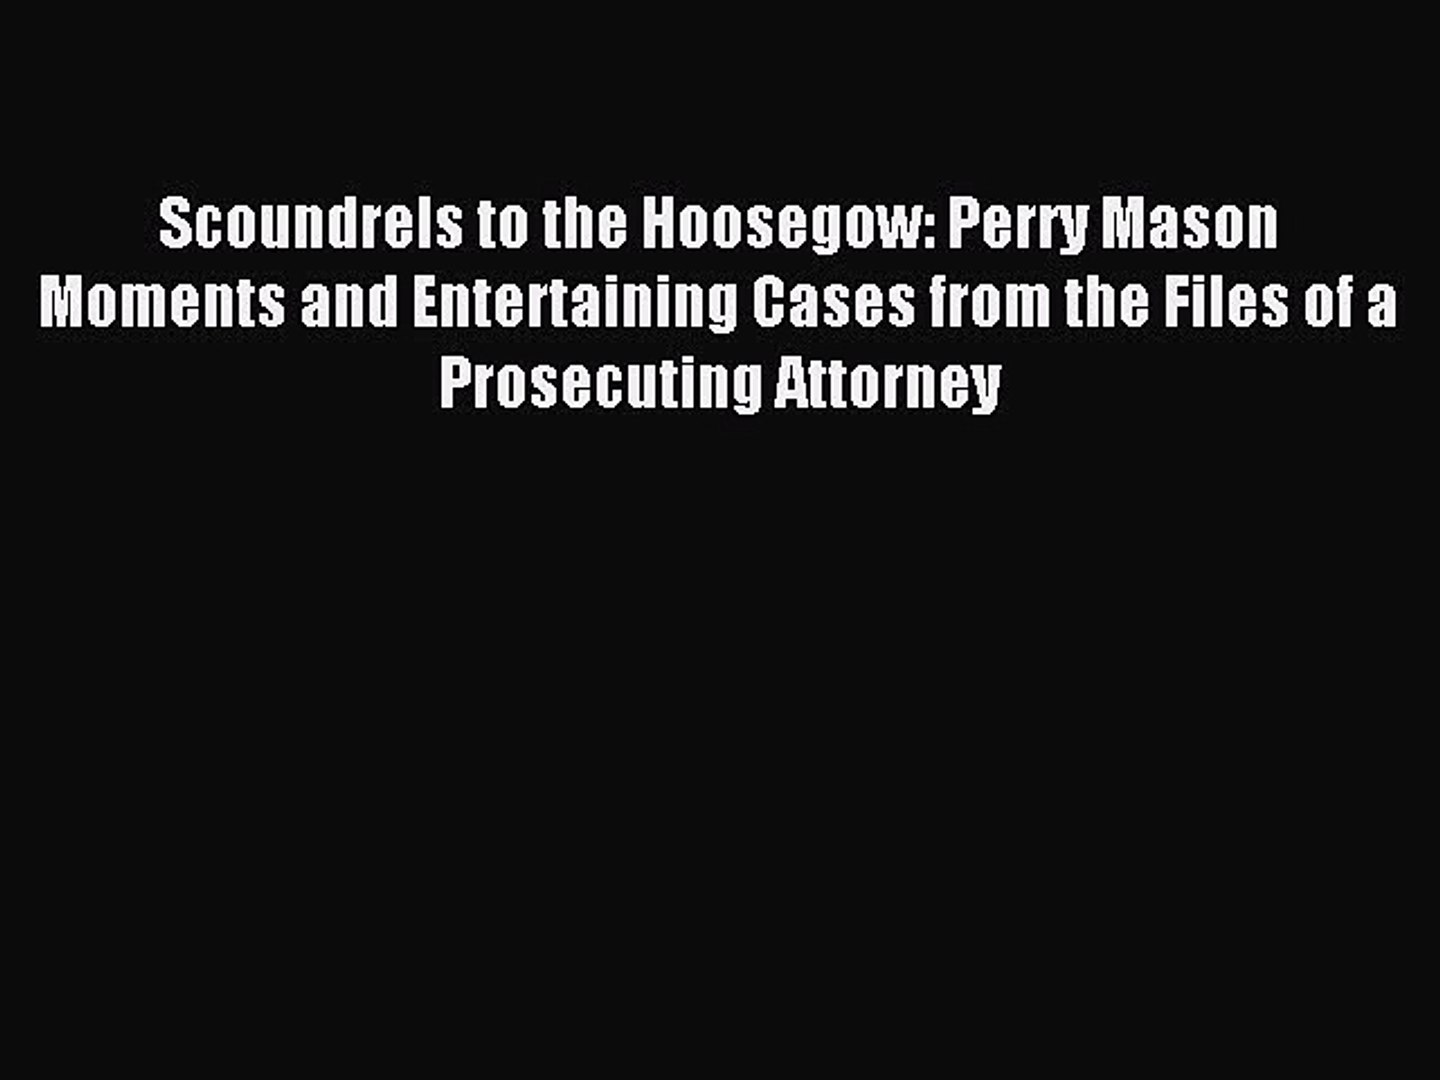 Download Scoundrels to the Hoosegow: Perry Mason Moments and Entertaining Cases from the Files